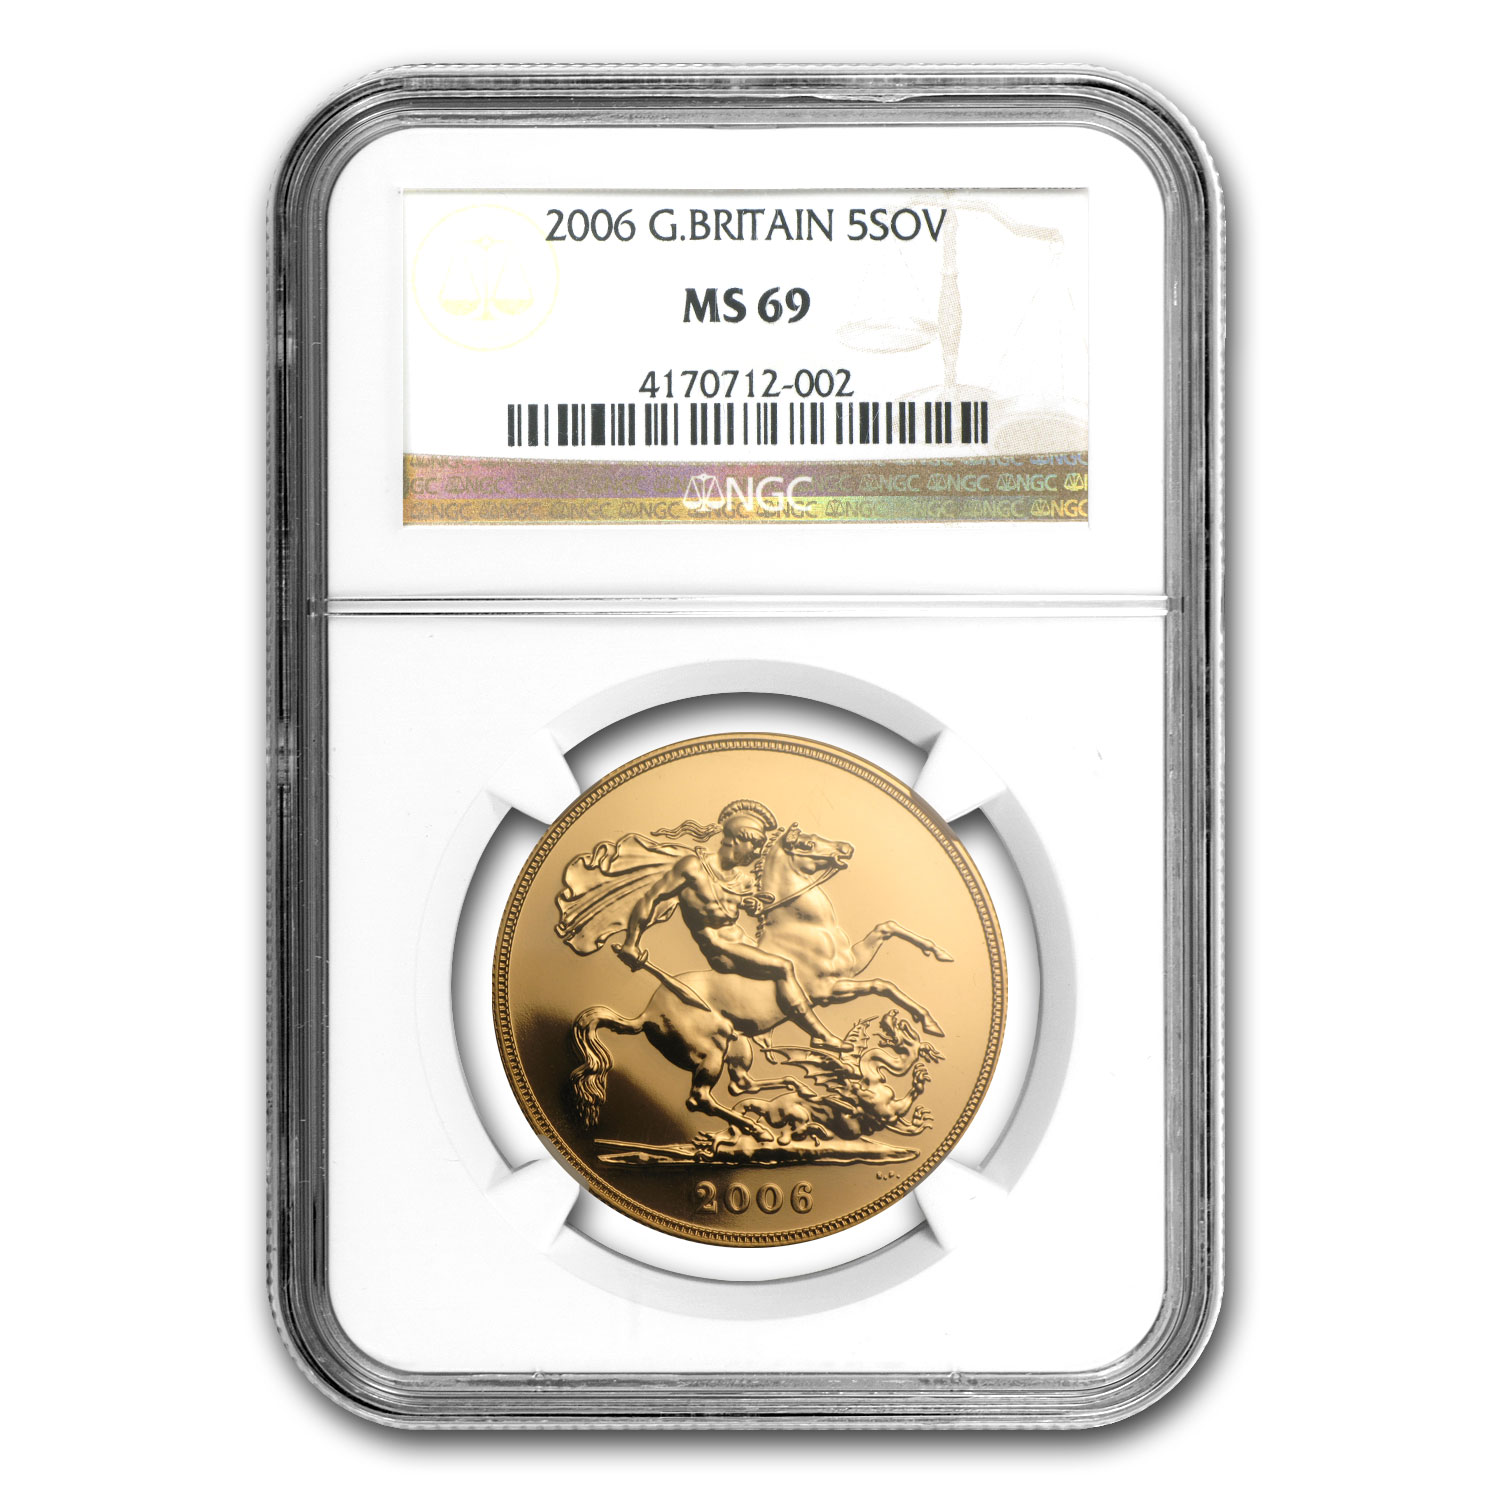 2000-2010 Great Britain Gold £5 Sov MS-69 NGC